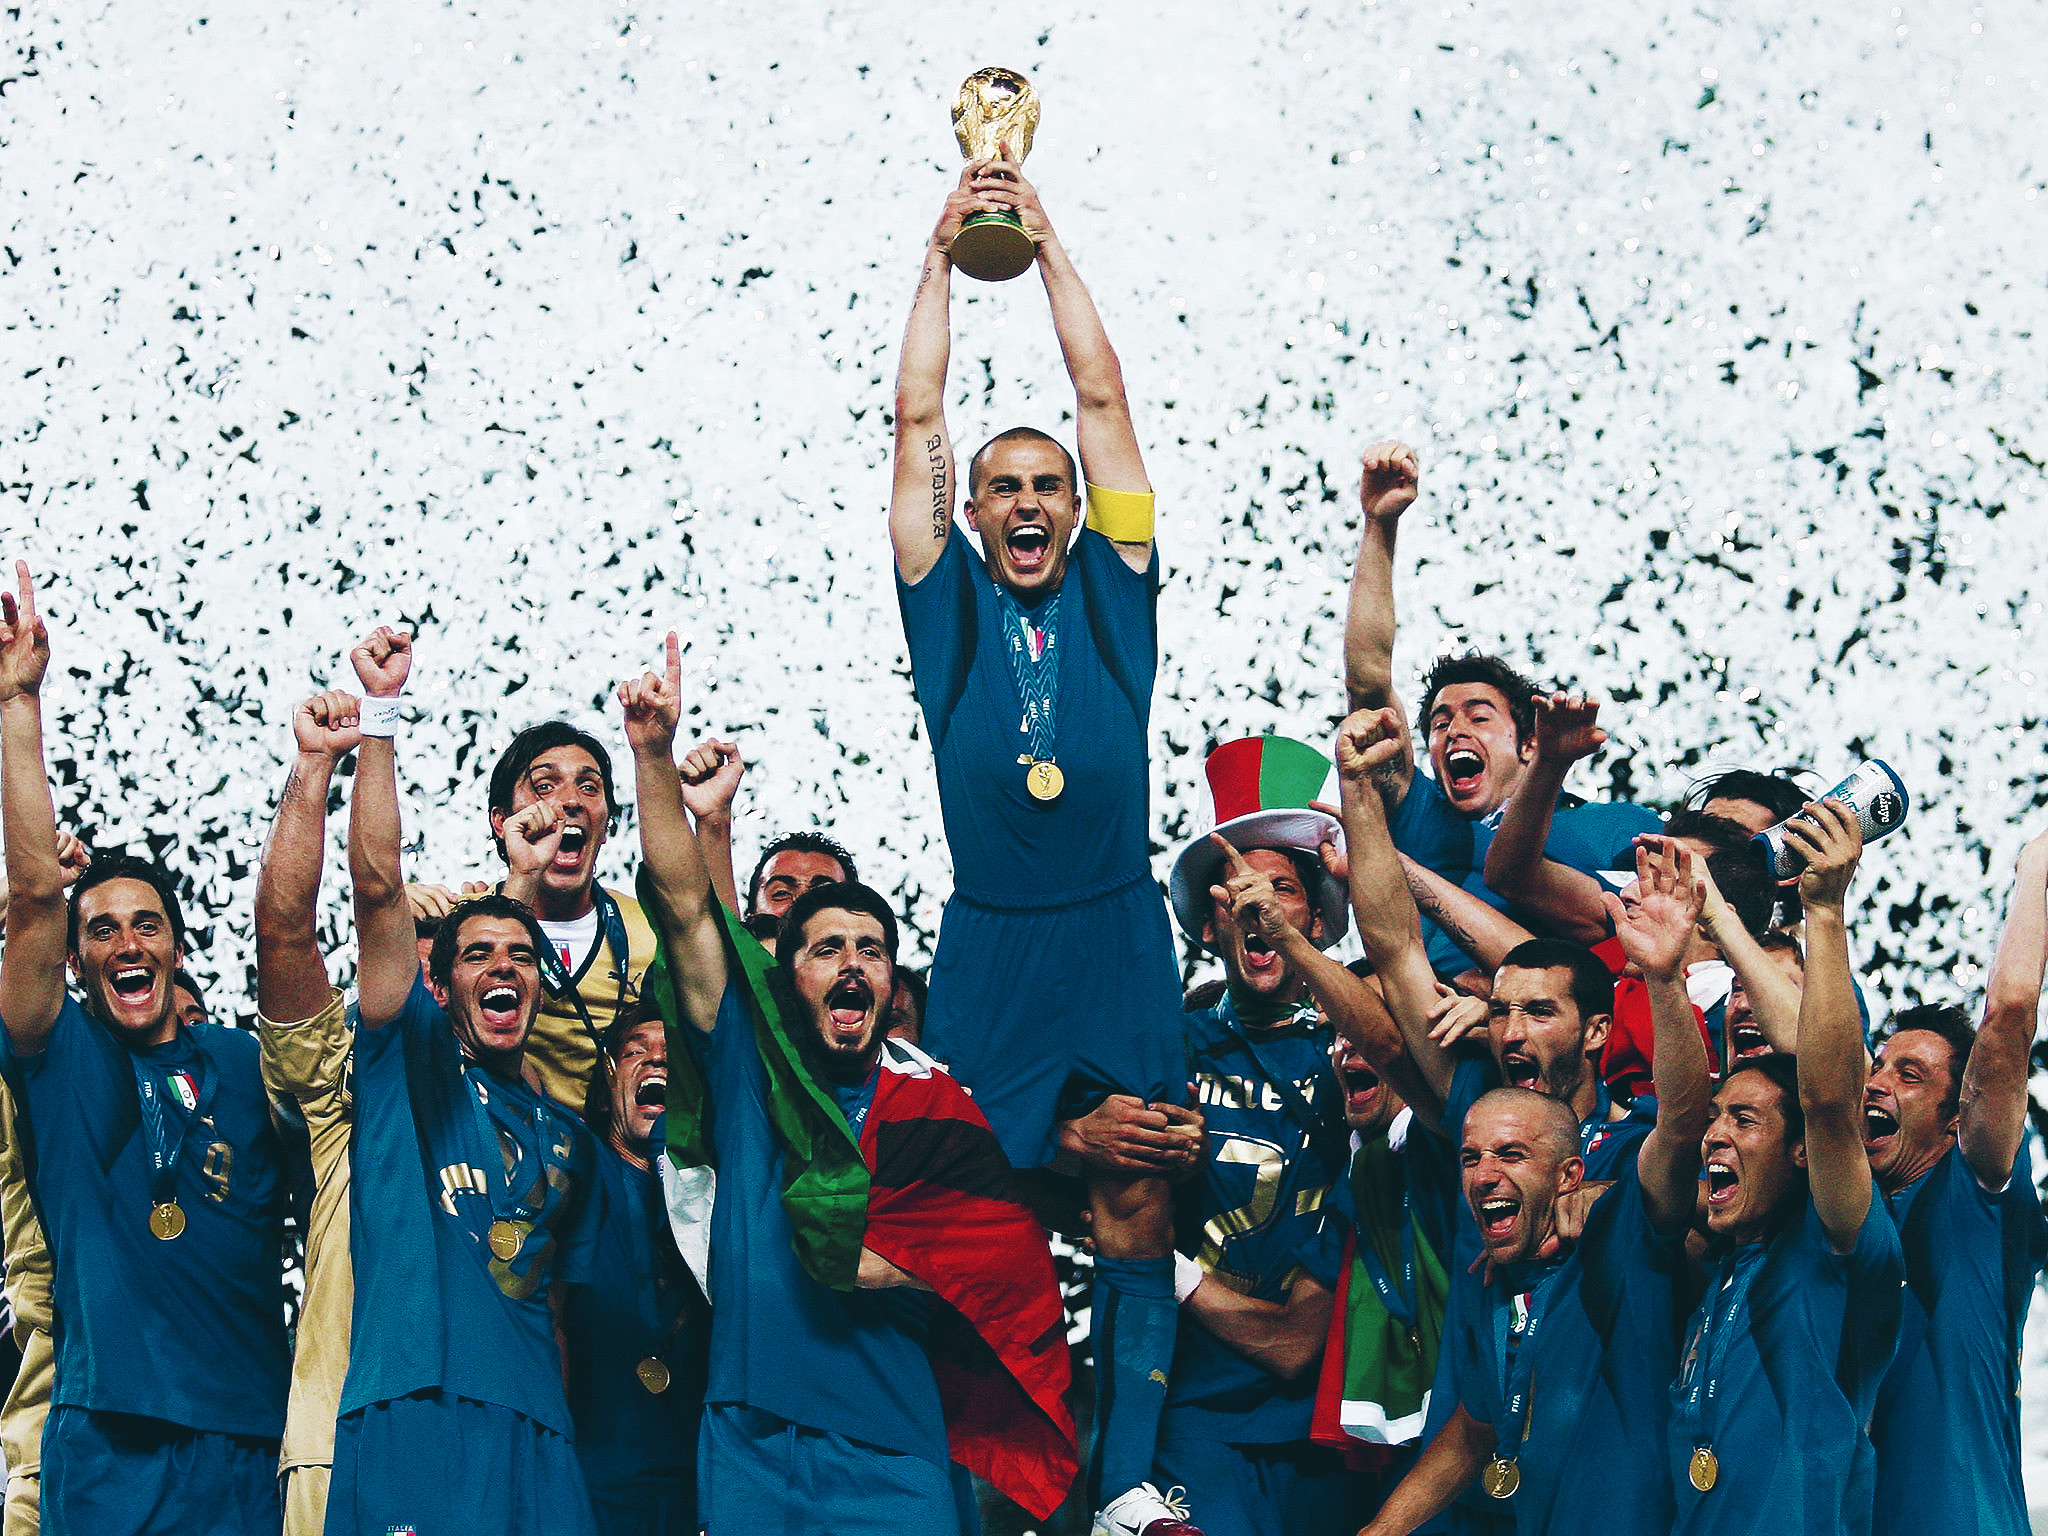 Fabio Cannavaro the street kid from Naples who became the King of